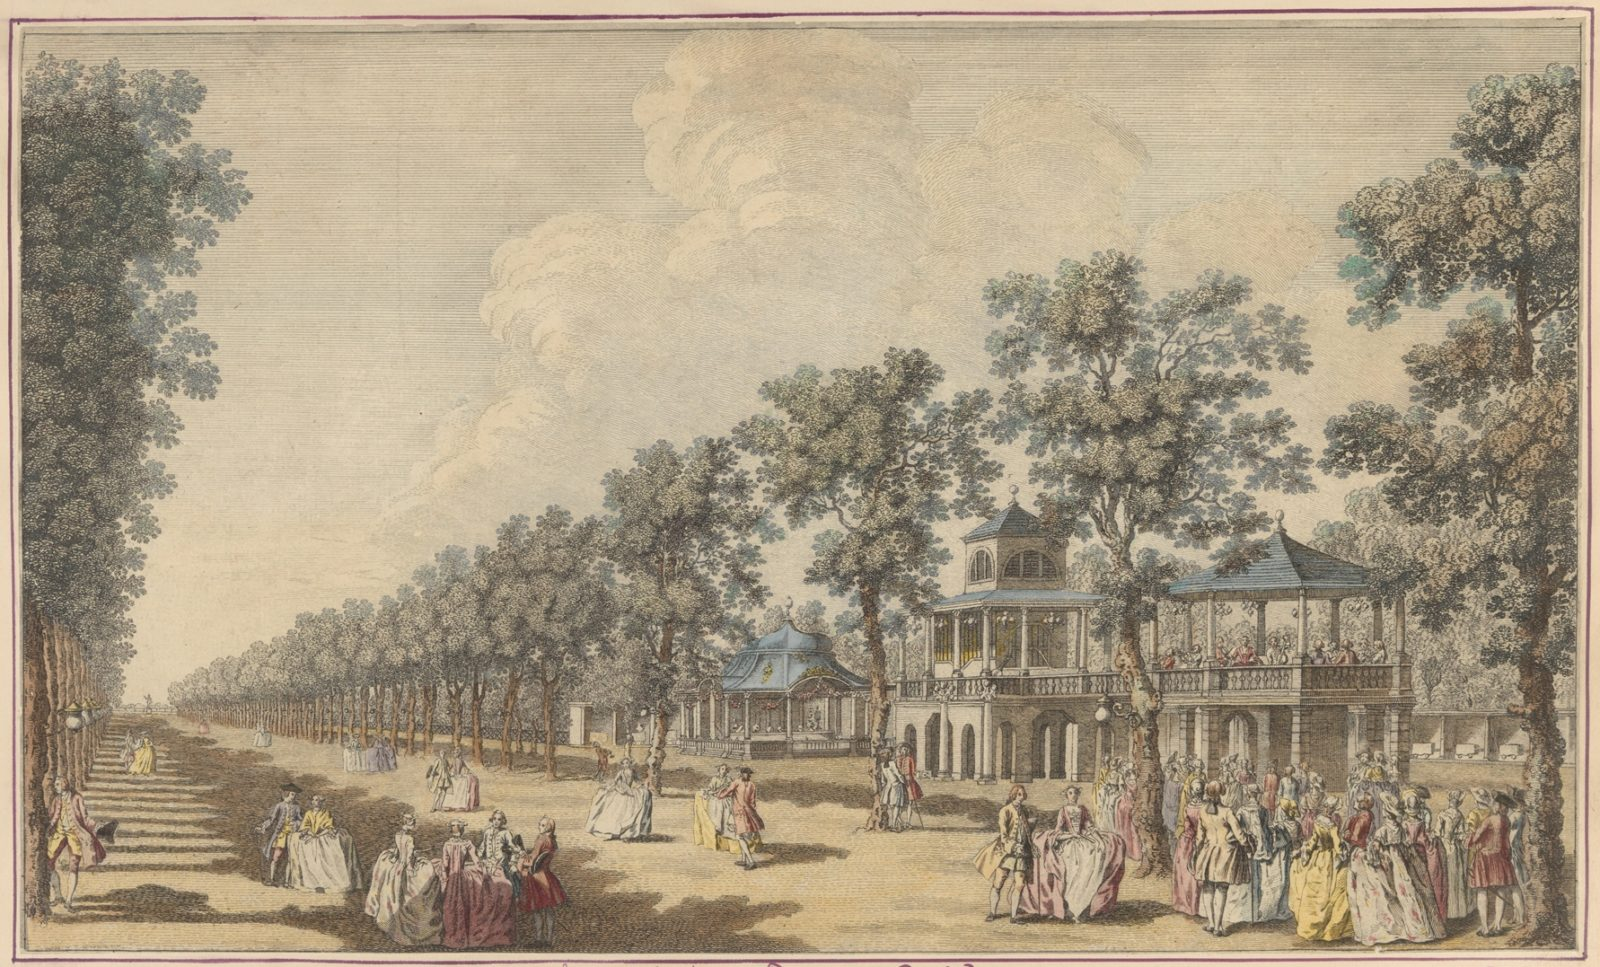 Vauxhall Illustrated: Scrapbook of miscellaneous British 18th and 19th century prints, including Vauxhall Gardens